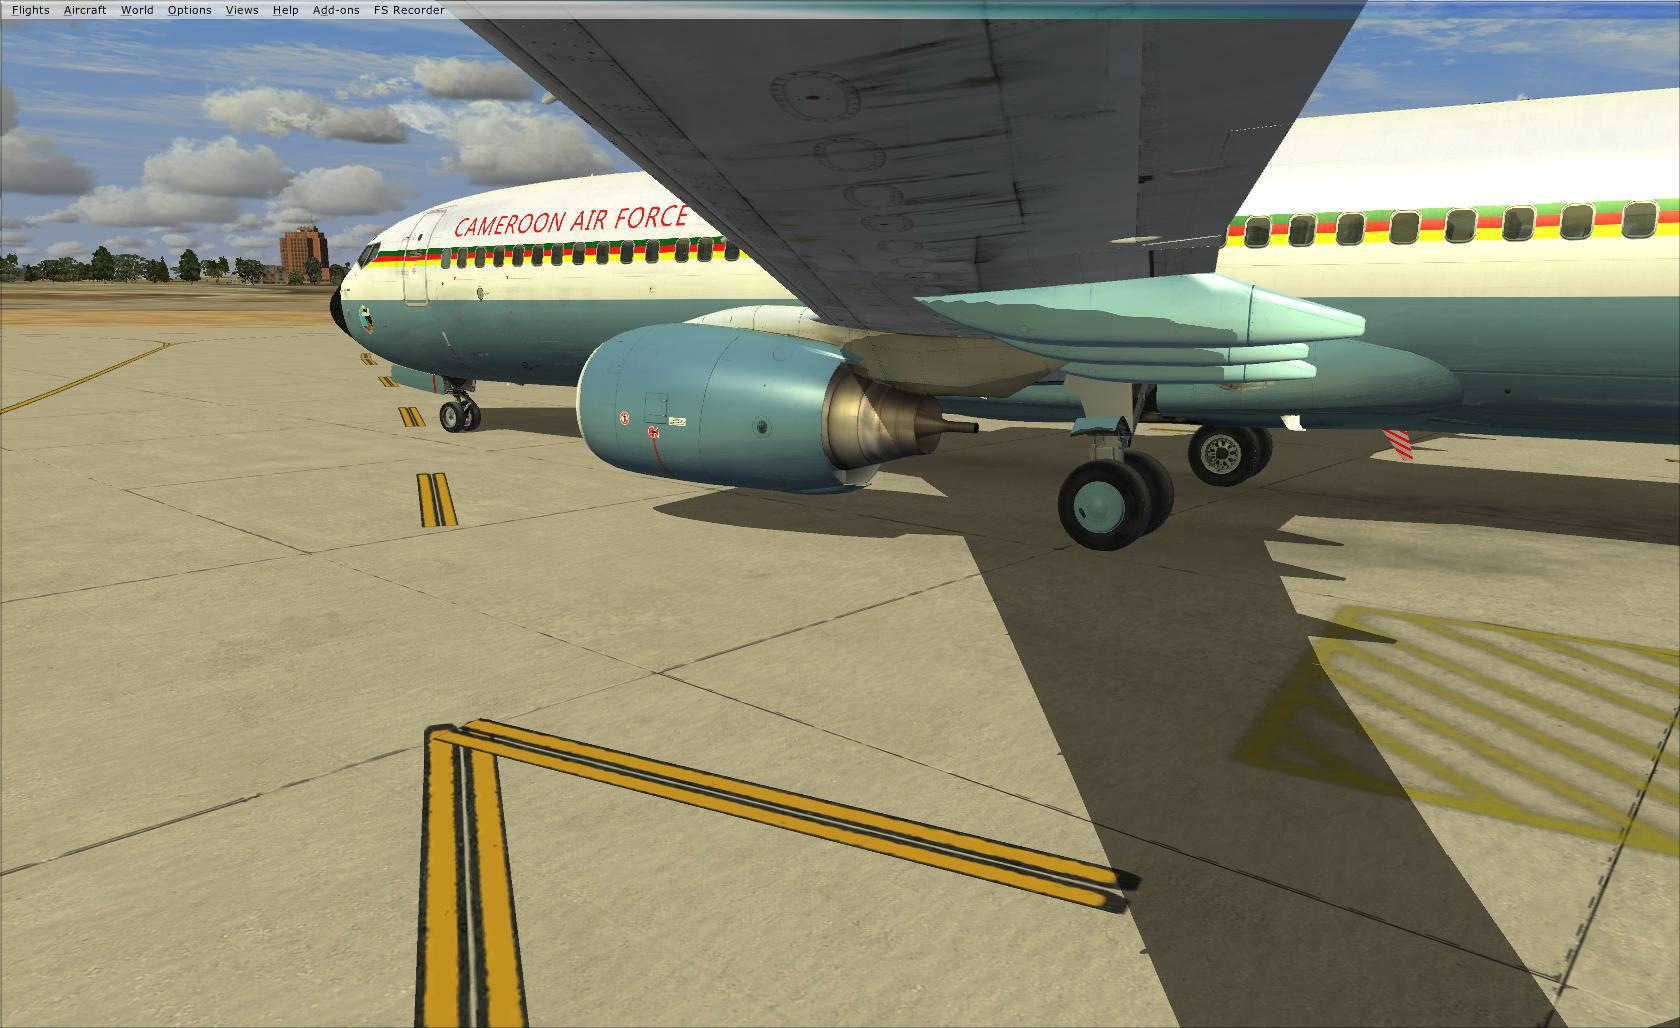 738 ngx cameroon air force 281299fsx2013071309423252